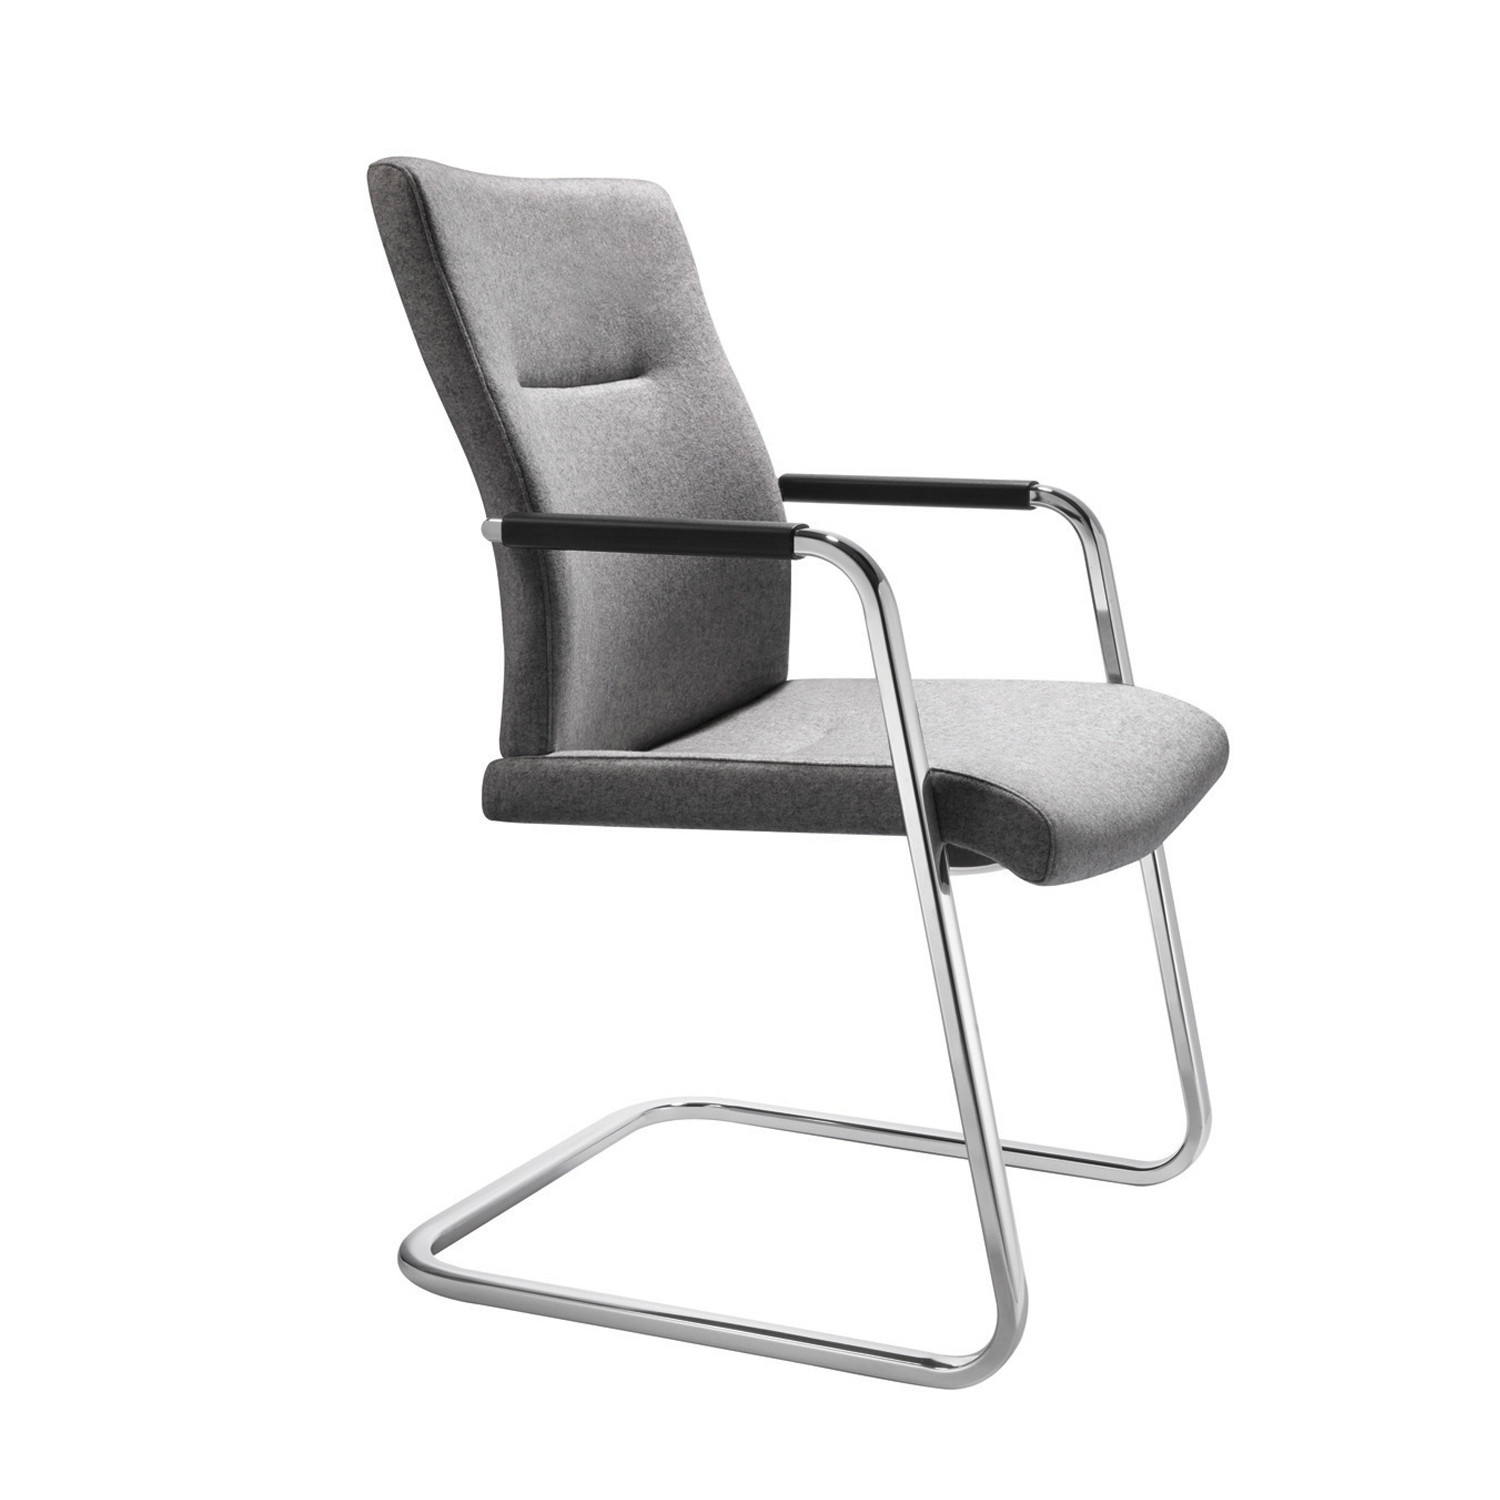 IS Executive Cantilever Chair